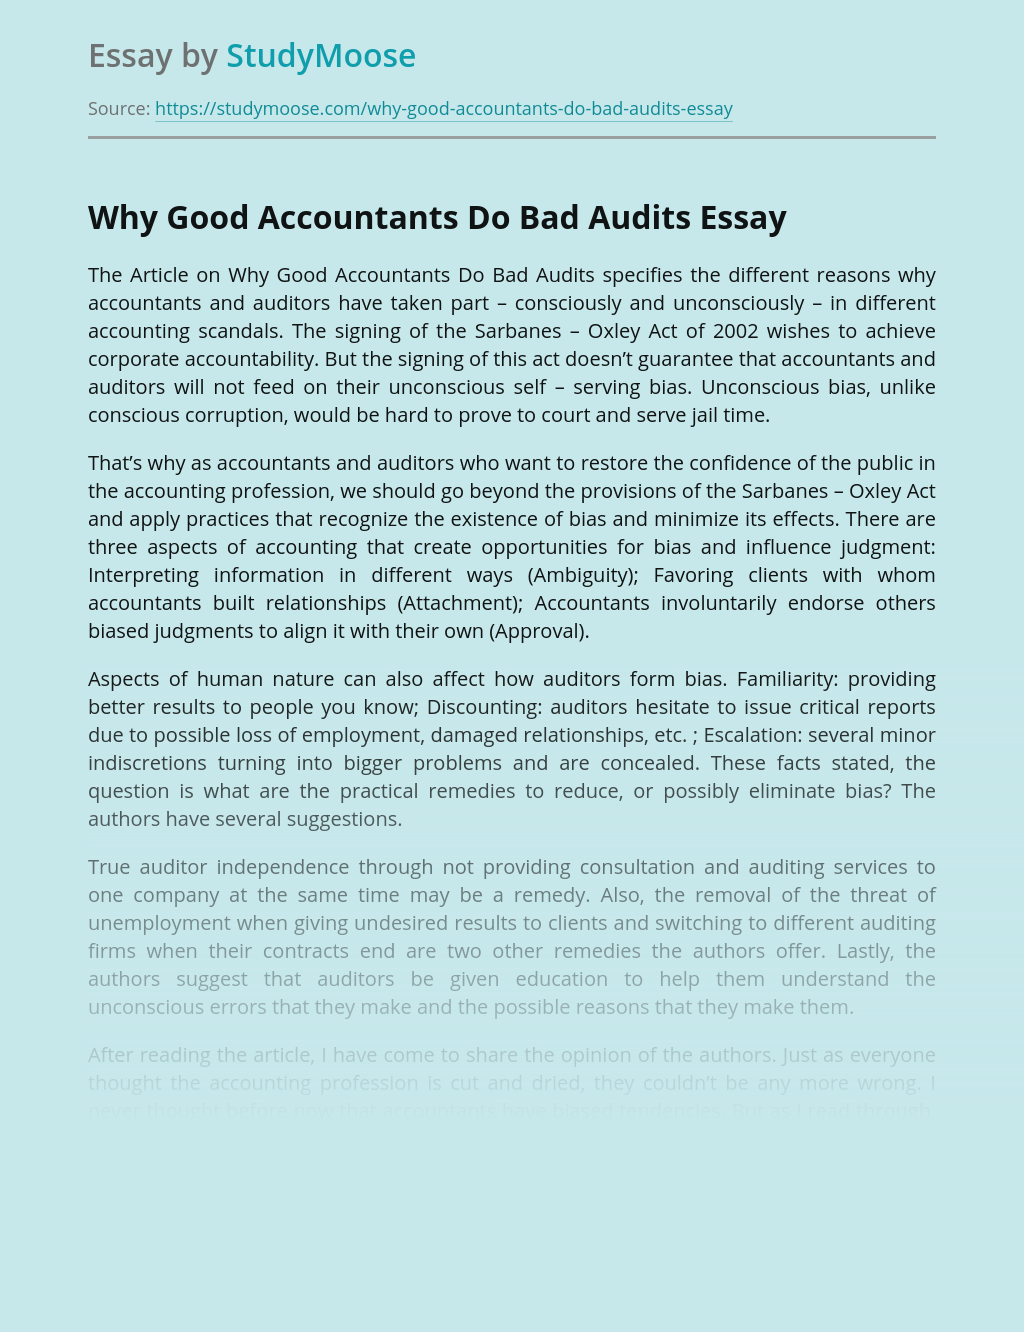 Why Good Accountants Do Bad Audits Article Analysis